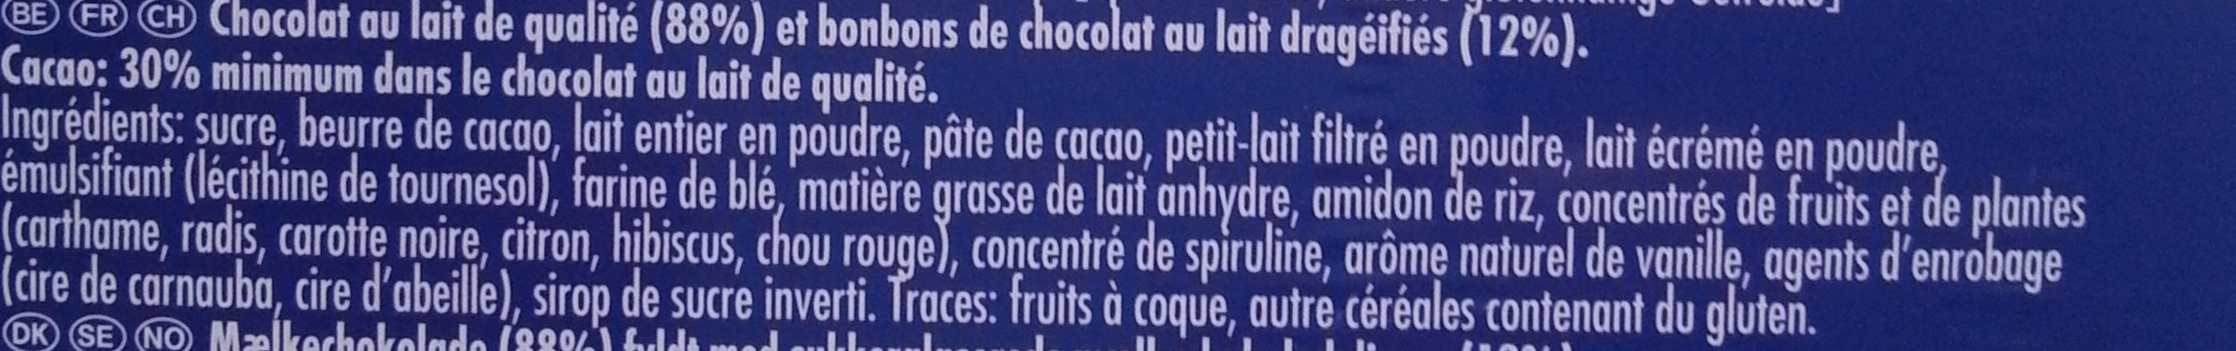 Calendrier de l'Avent Smarties - Ingredients - fr